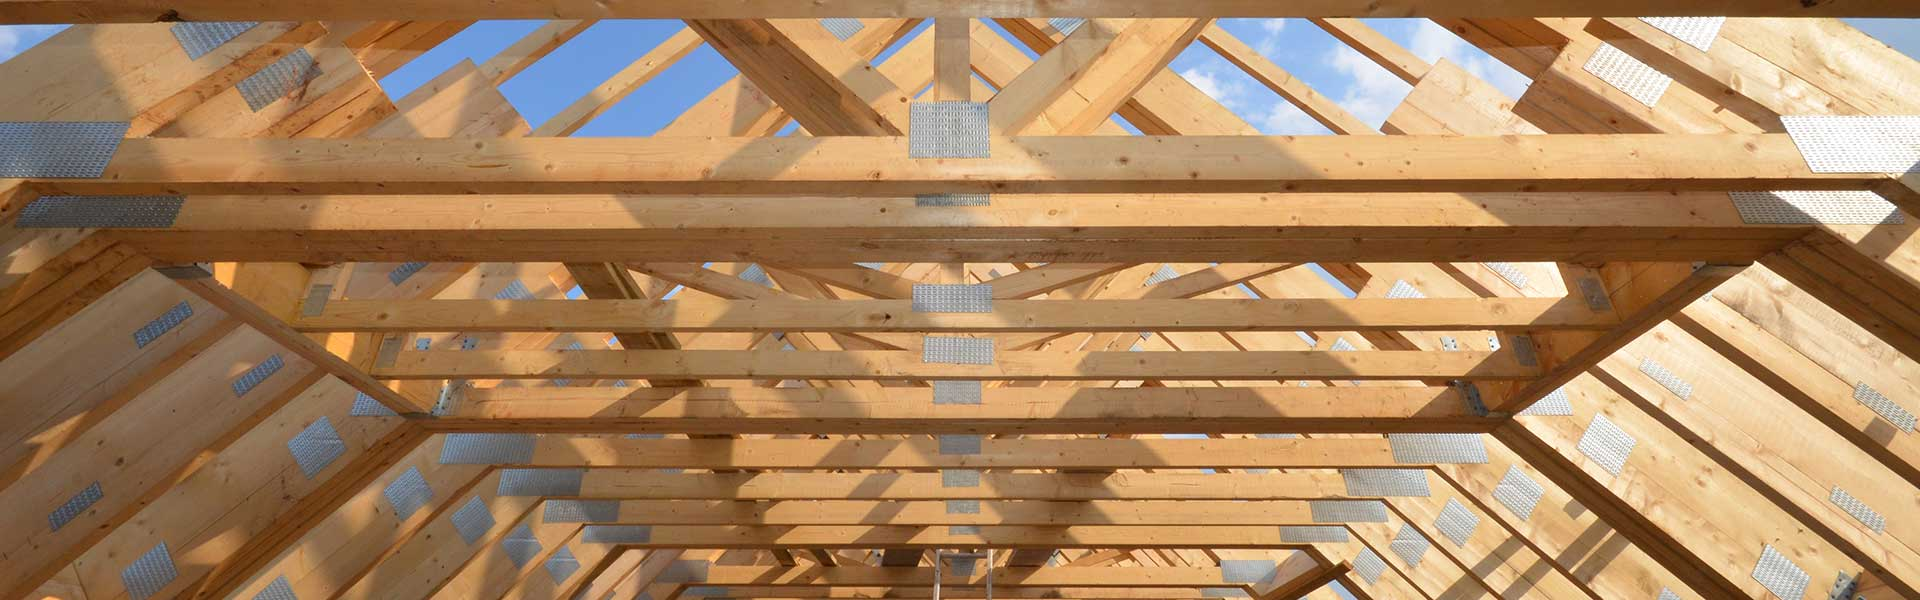 Roof Trusses for Tarporley 'Superchord' Self-Build